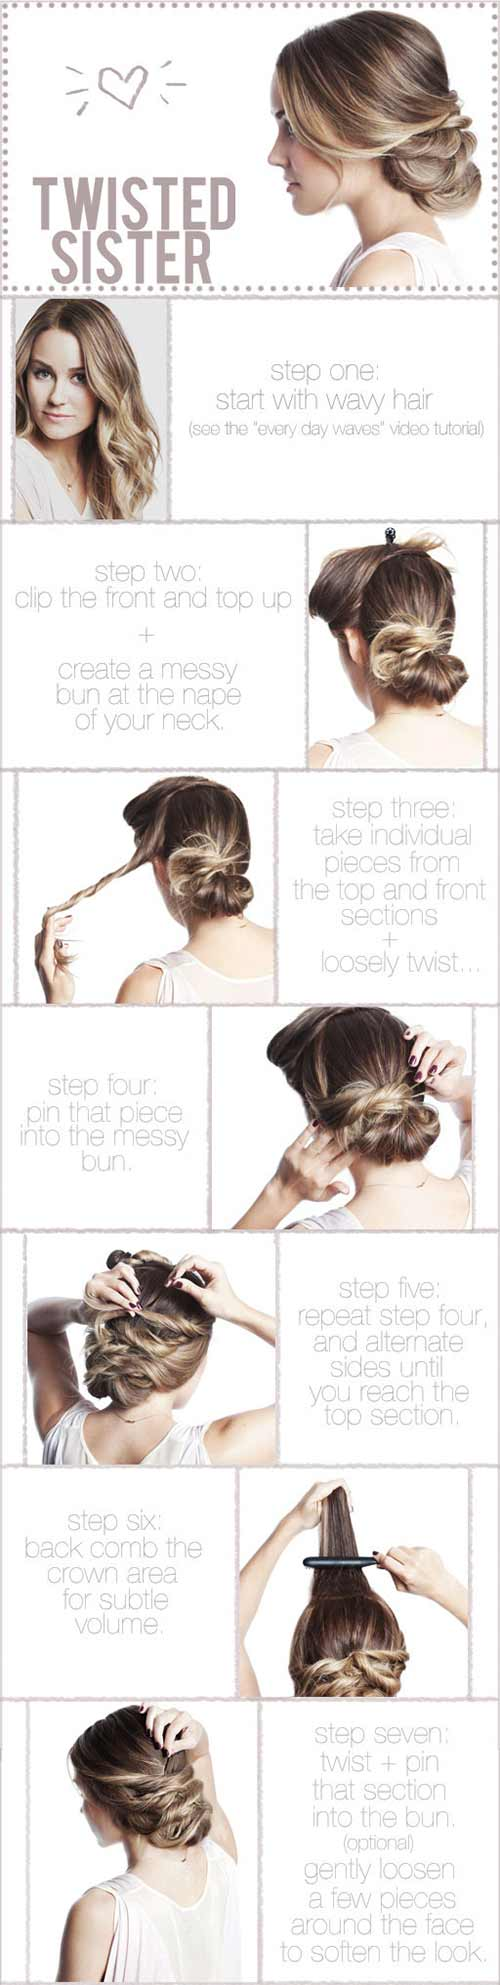 Updo Hairstyles - The Twisted Sister